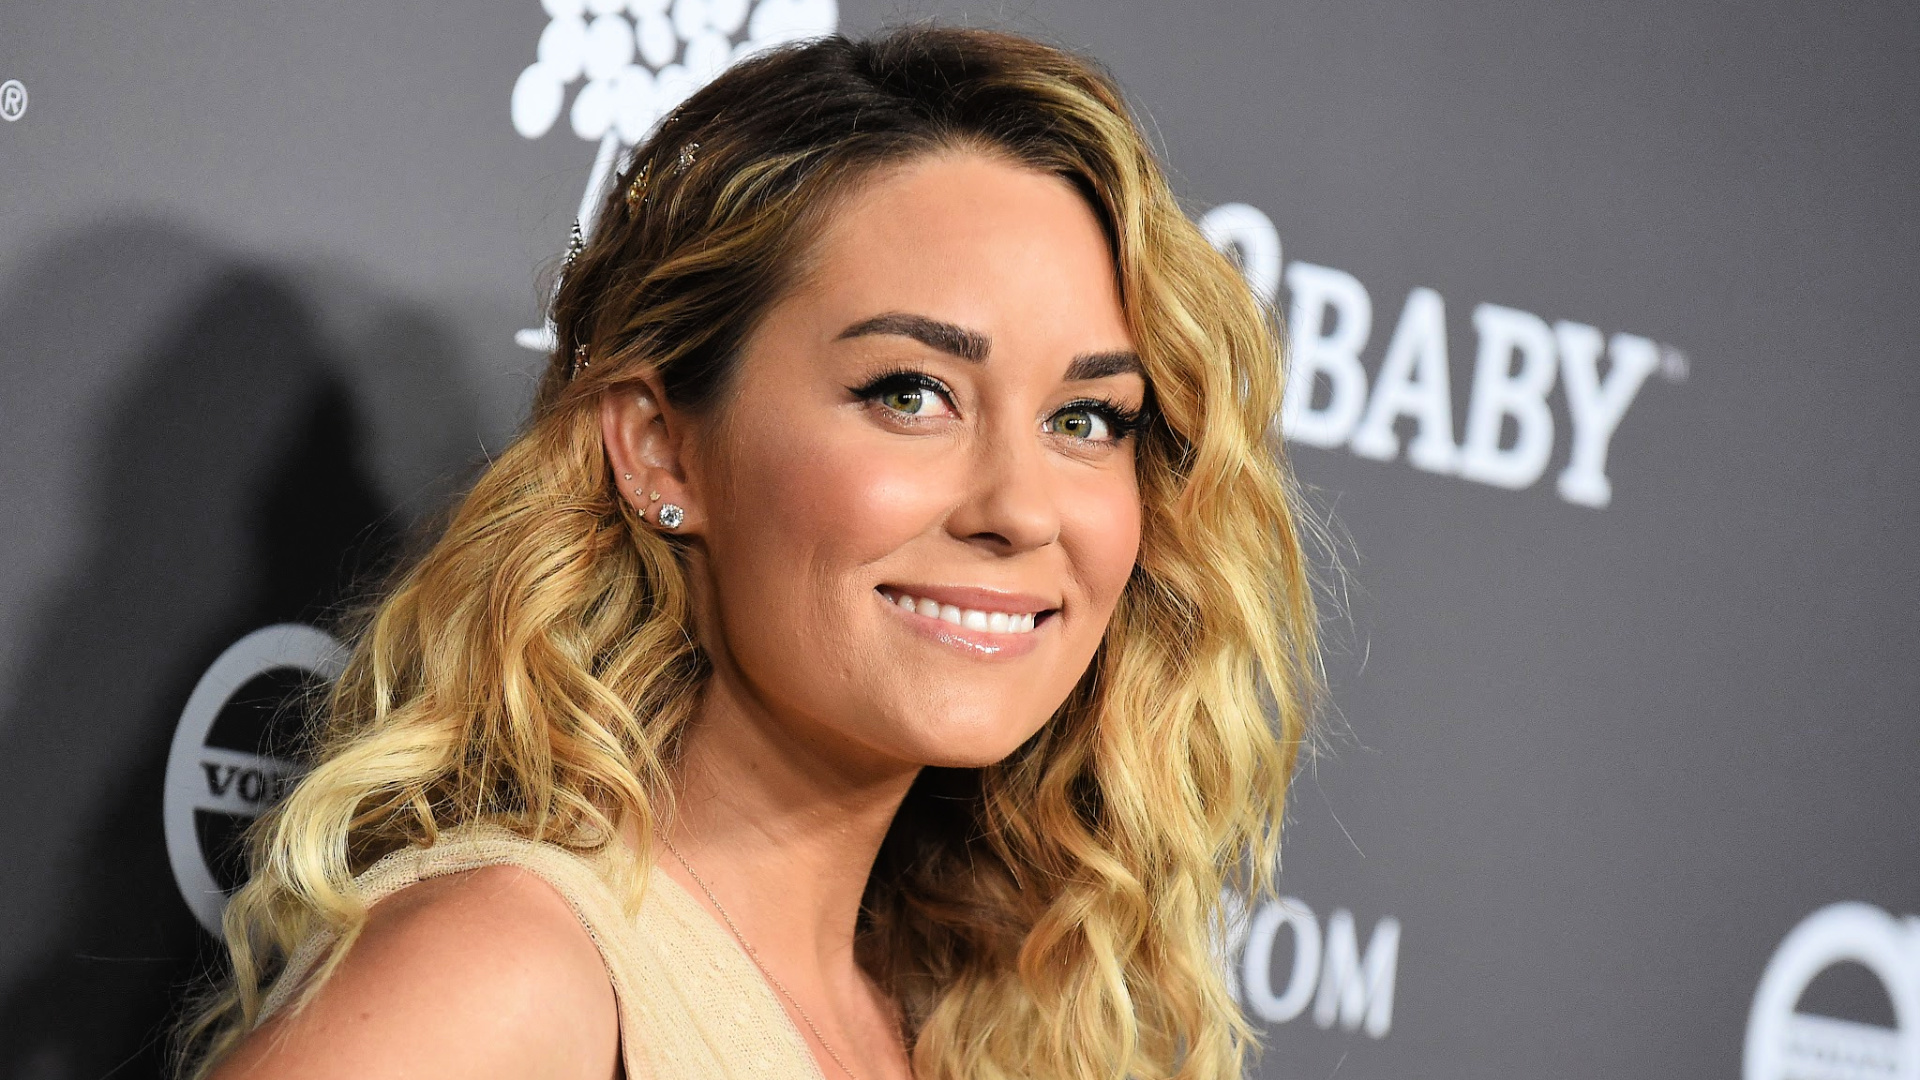 Lauren Conrad Lauren Conrad Felt Ashamed That She Had Difficulty Breastfeeding